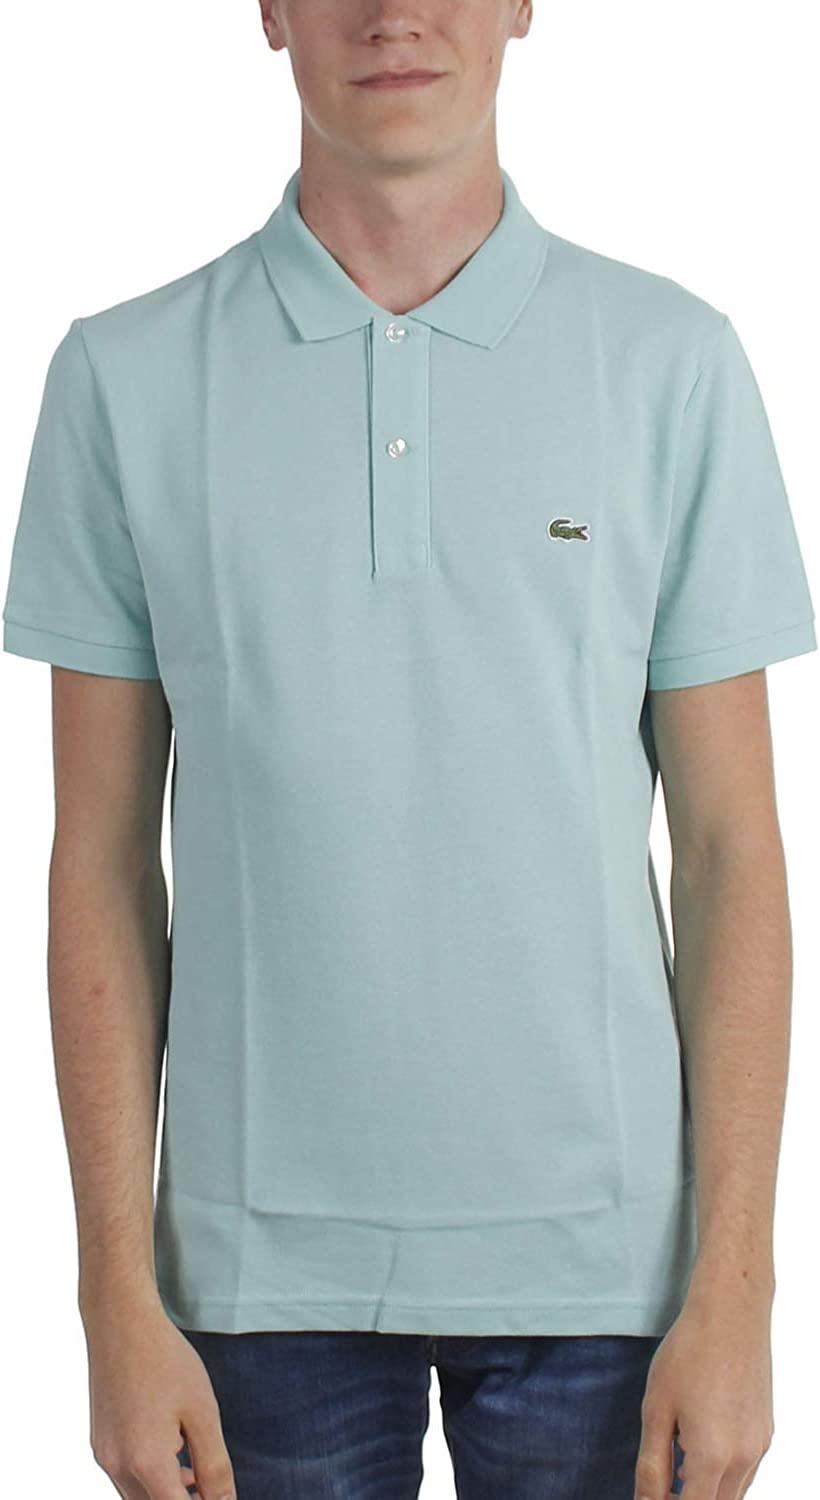 Lacoste - Mens Ph4012 Short Sleeve Slim Fit Polo Shirt, Size: